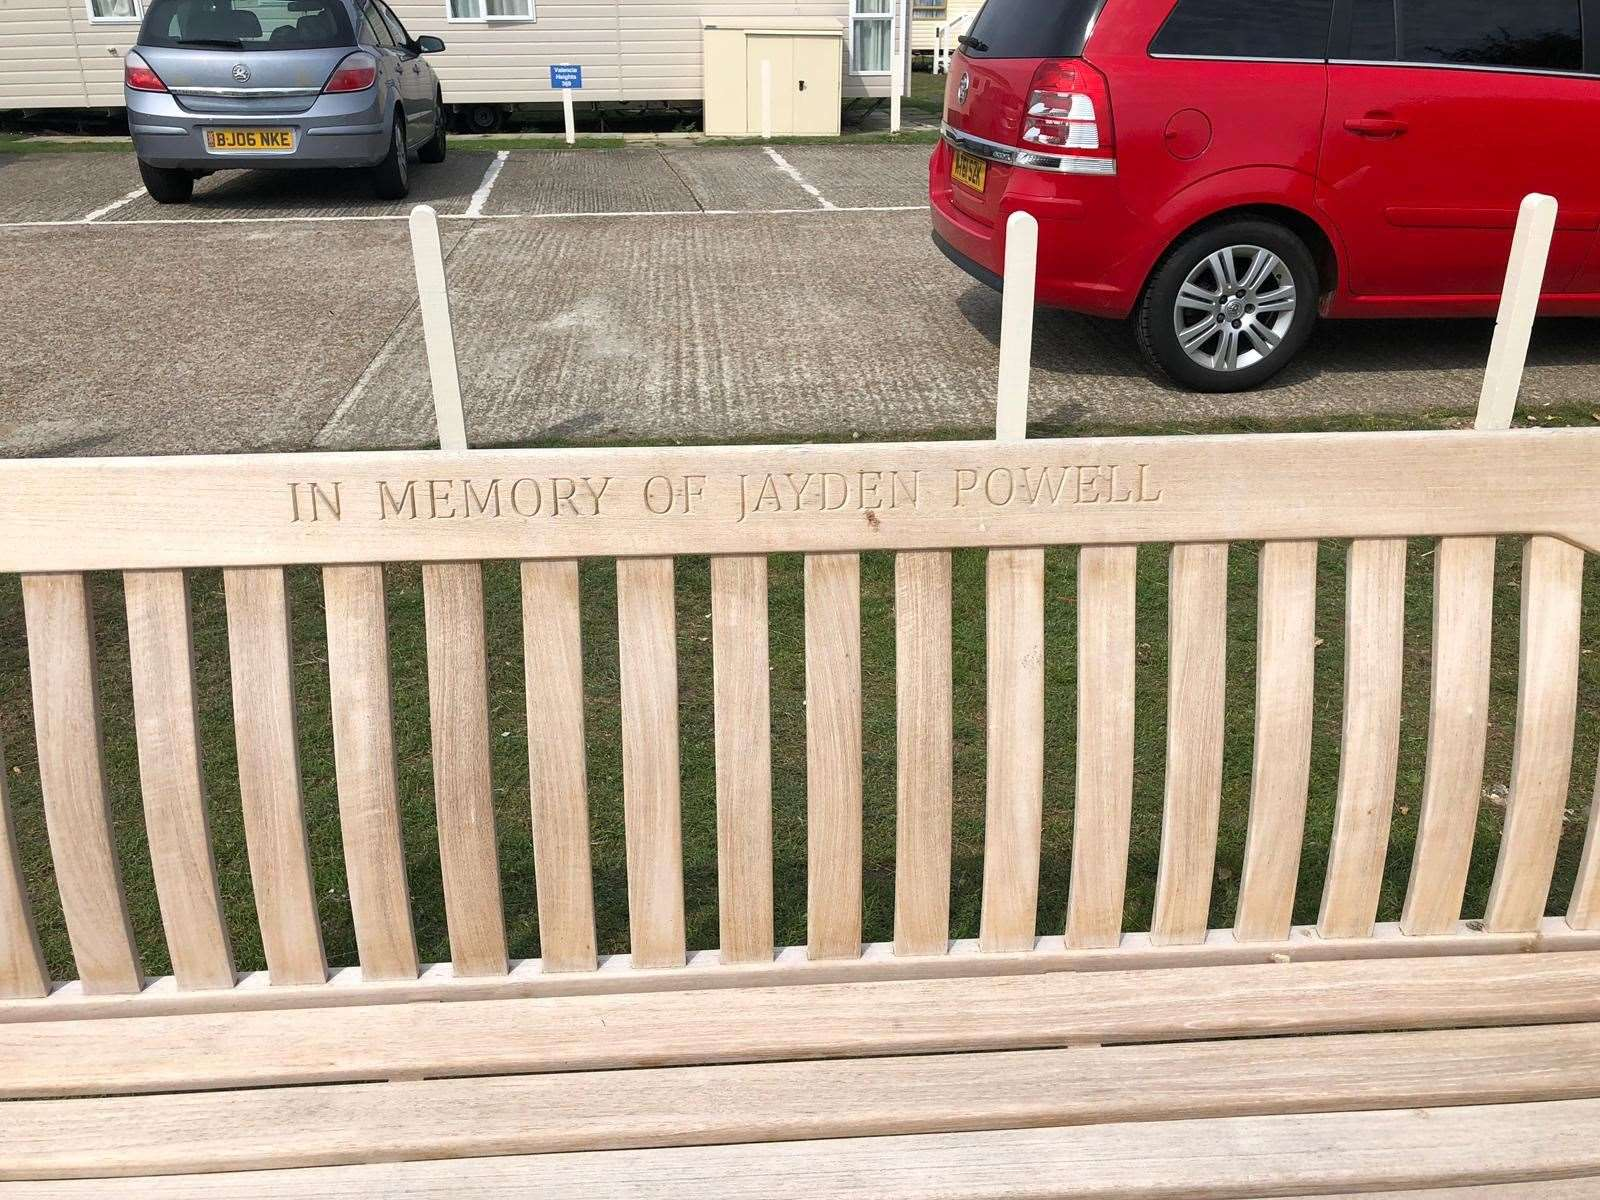 A bench has been installed in Jayden Powell's memory at the Romney Sands holiday park (15012182)